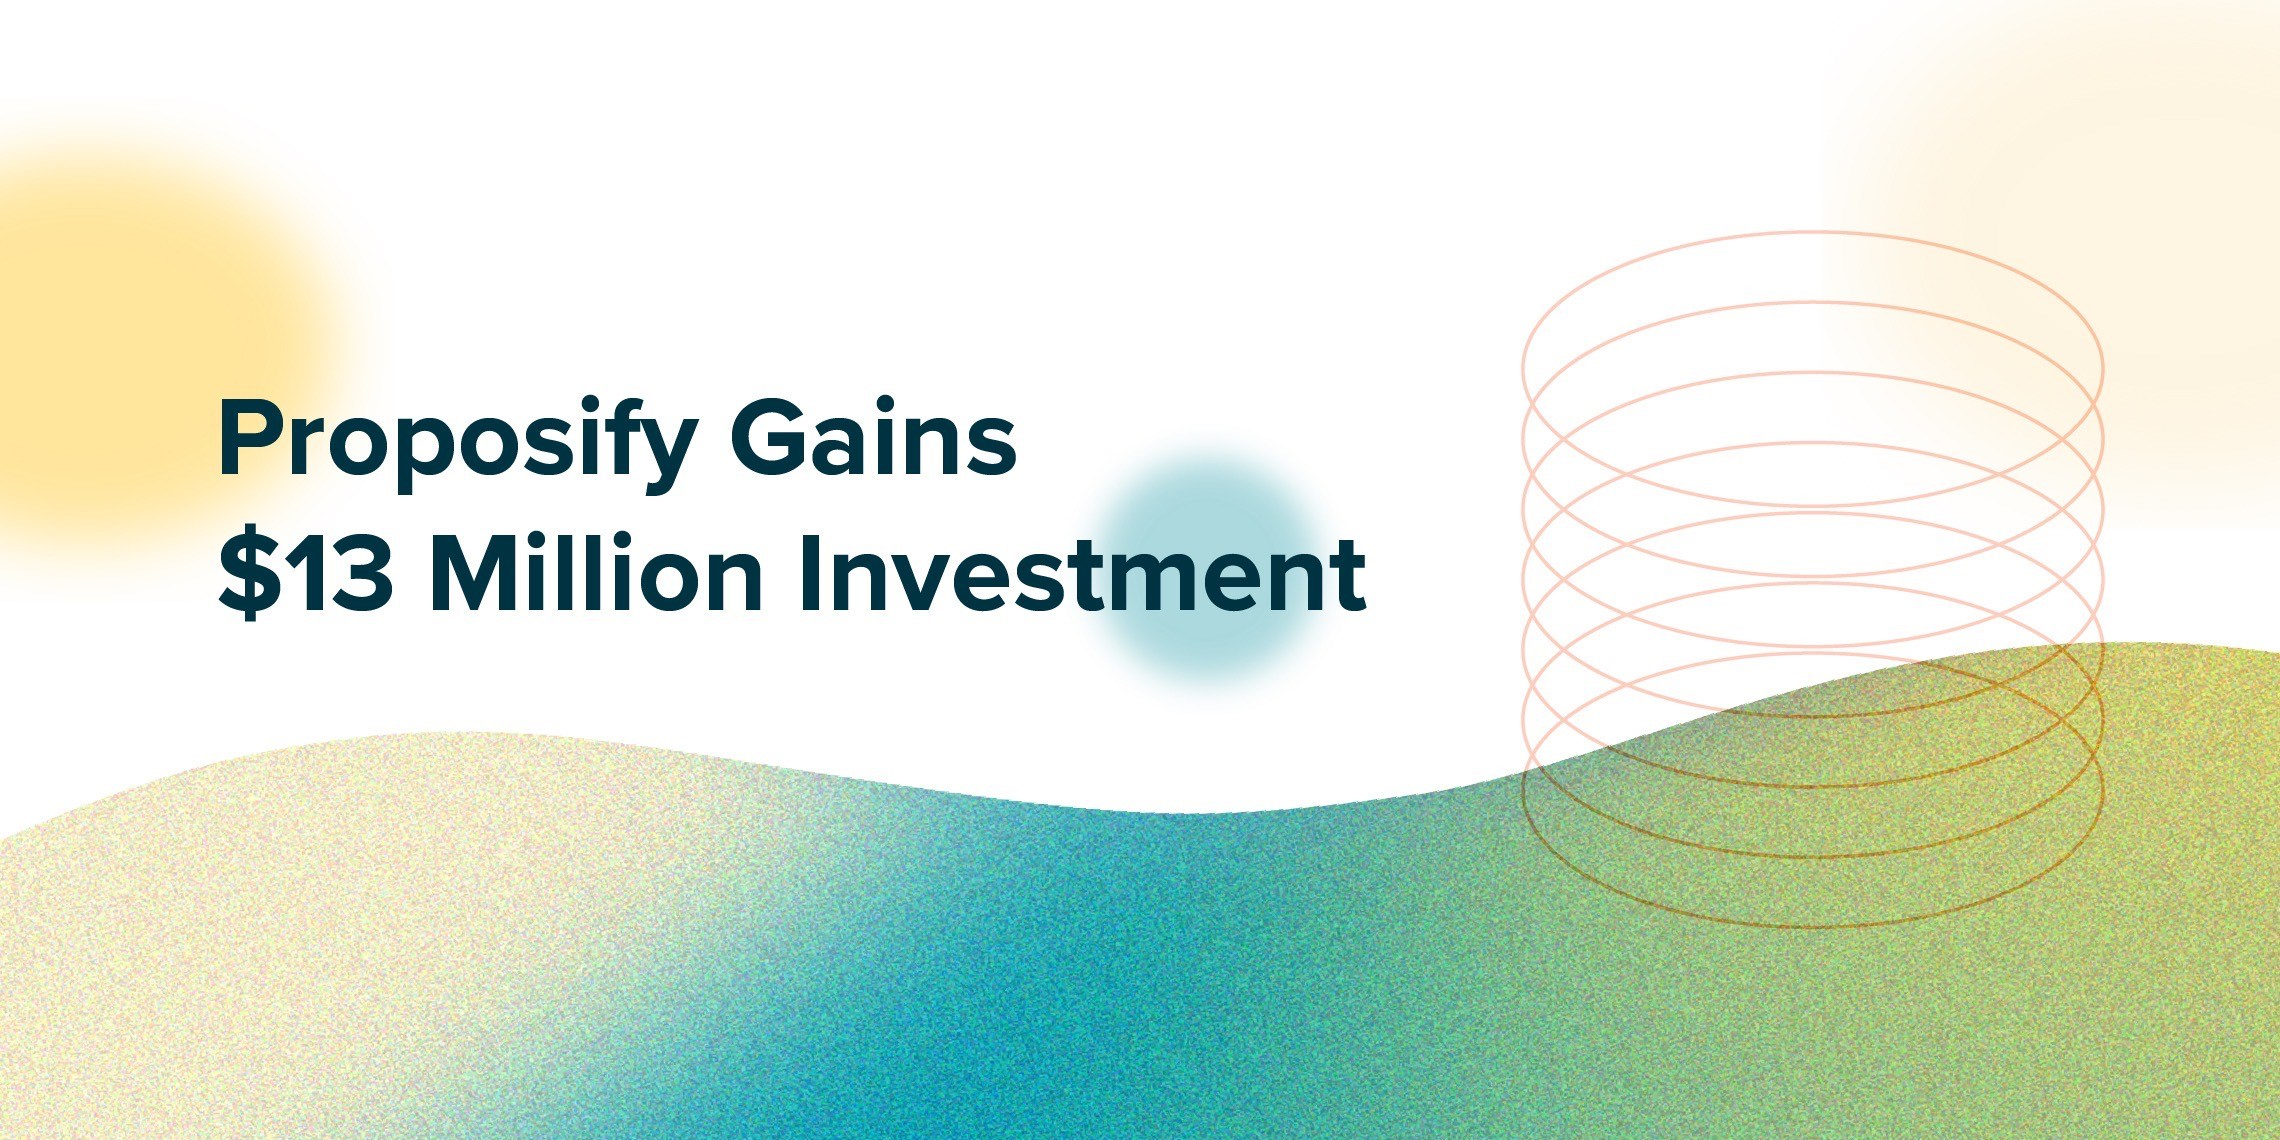 Proposify gains #13 million investment